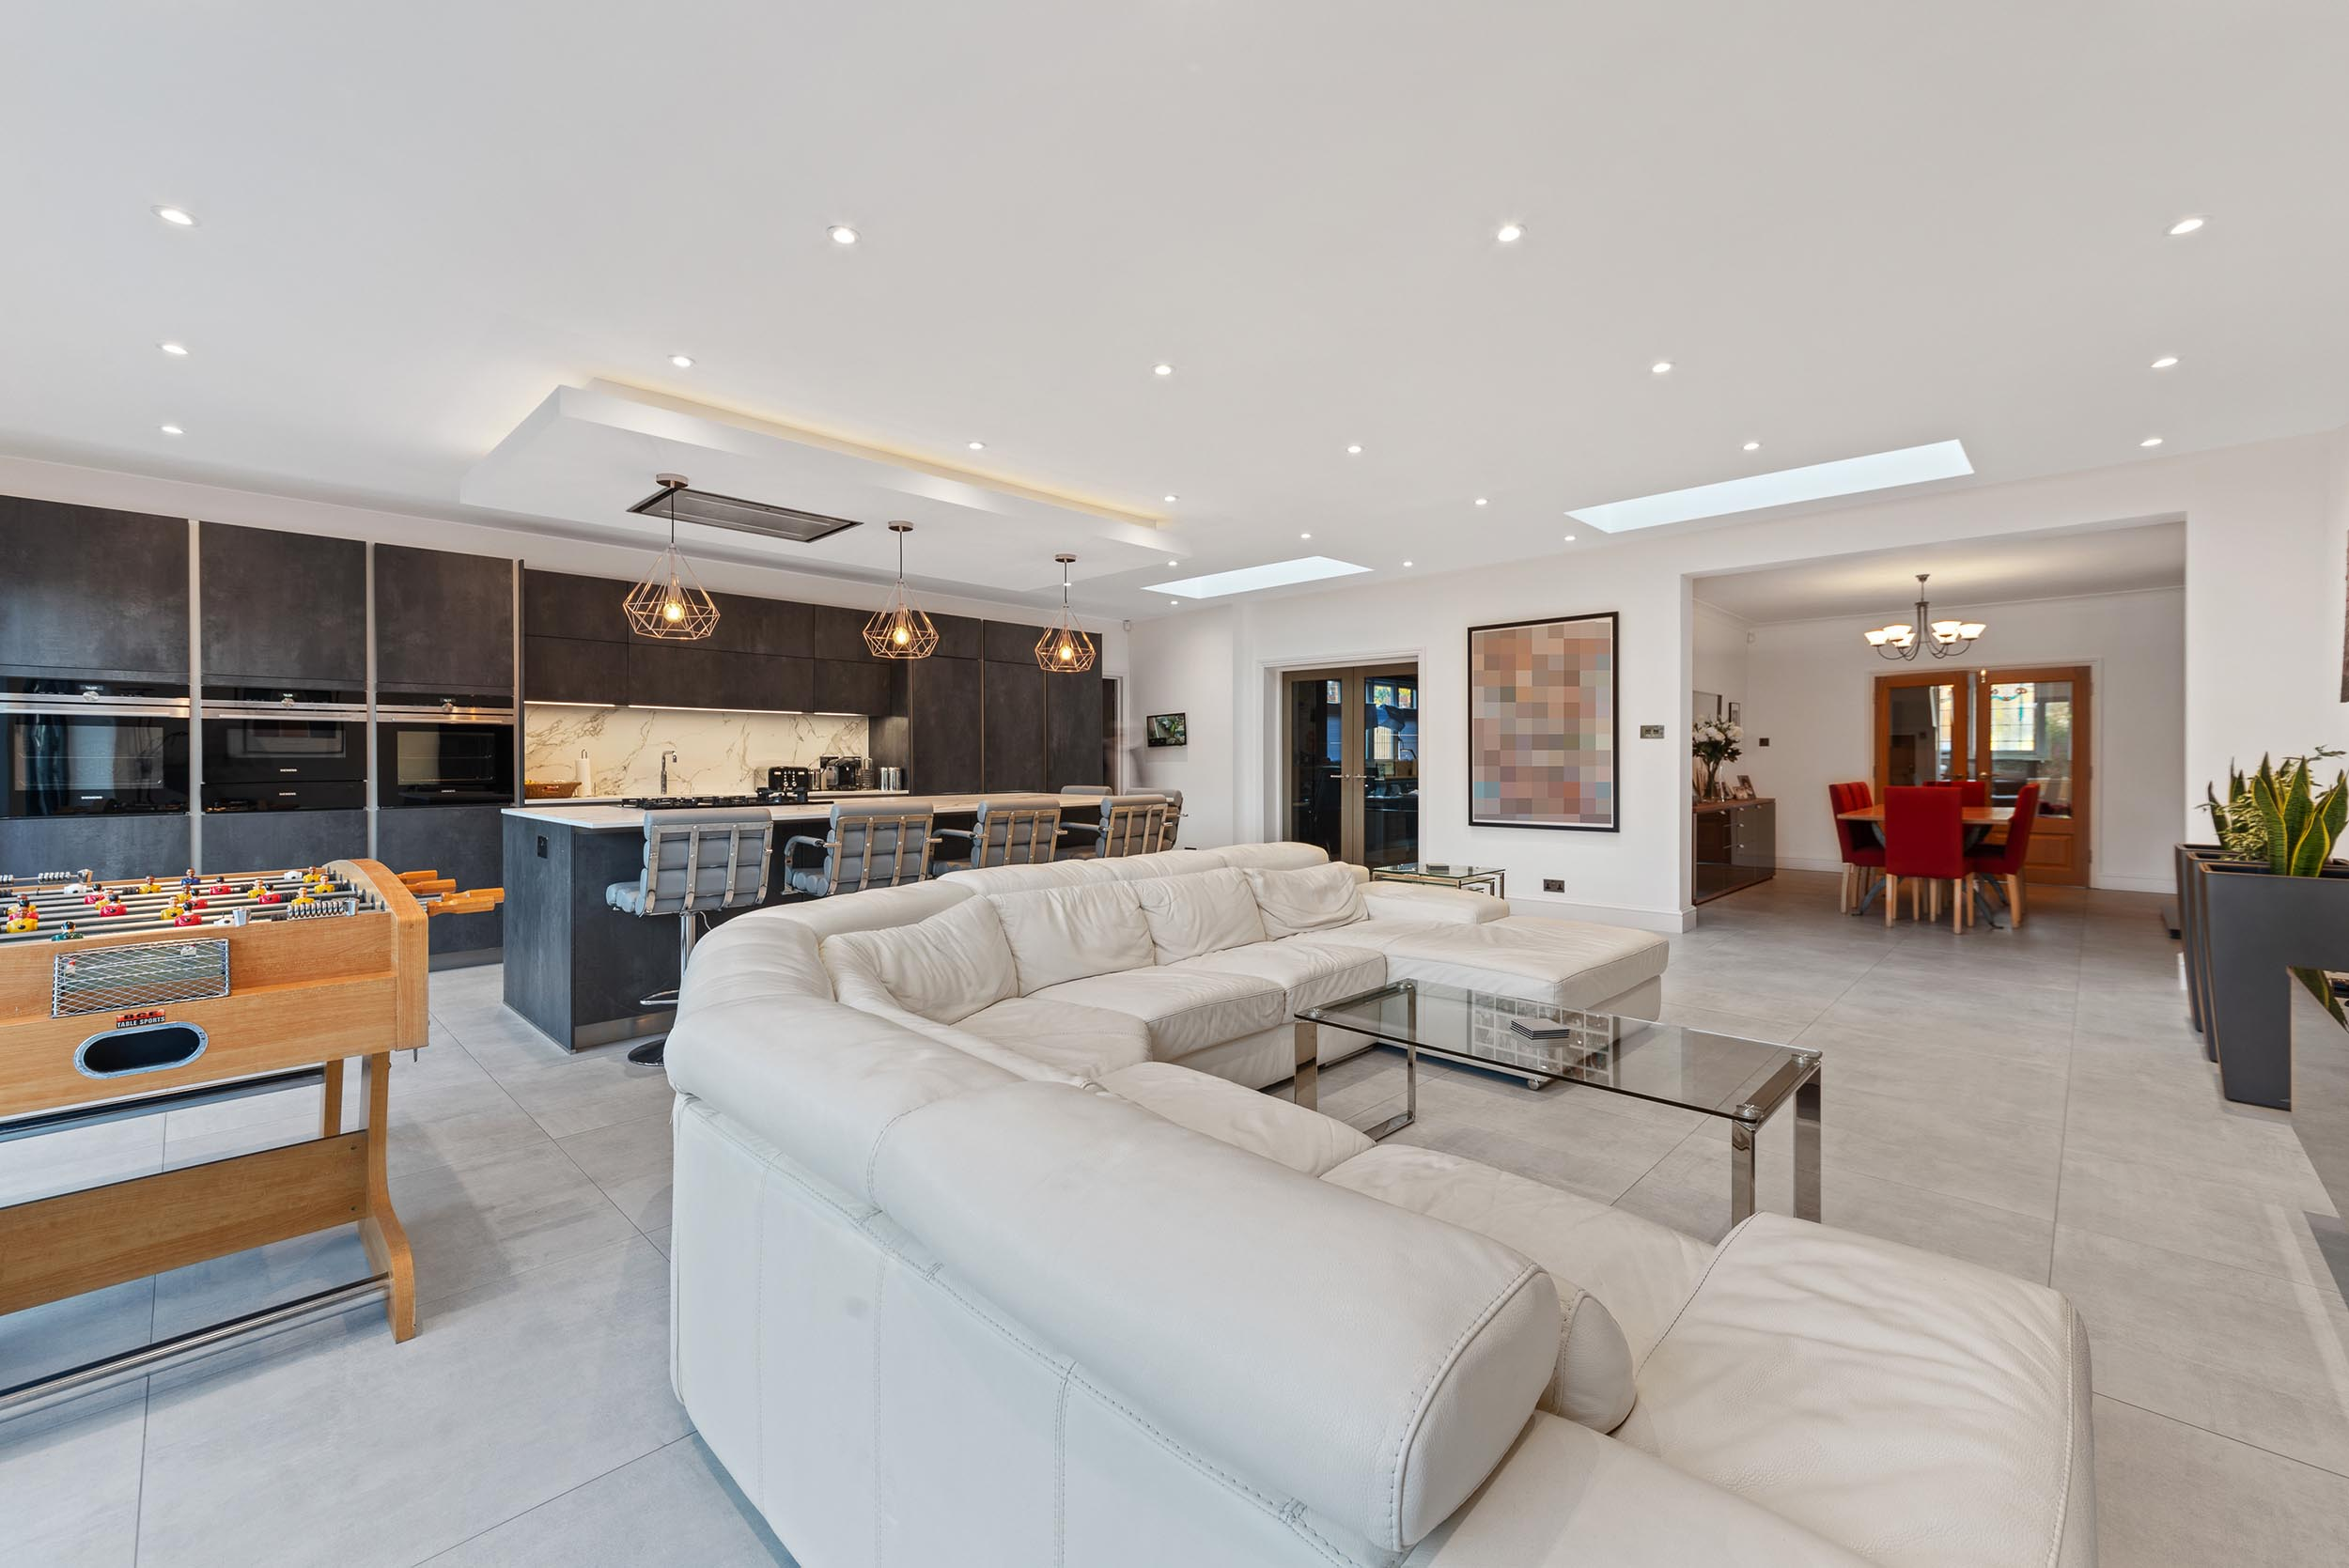 61-and-63-Wades-Hill-N21-1BD-Small-Res-17